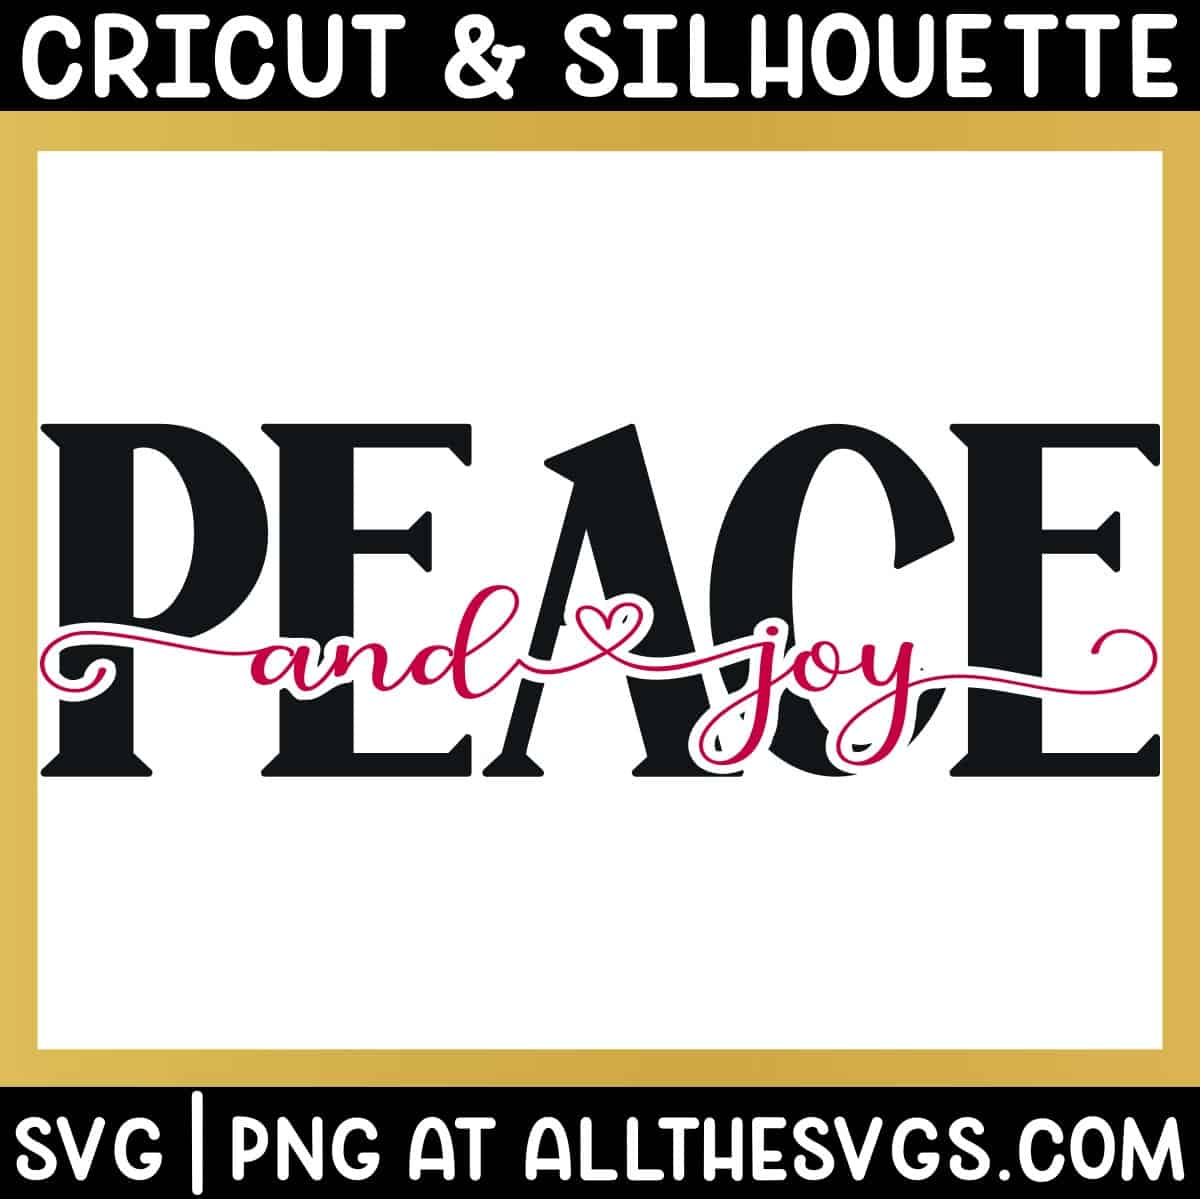 peace in bold caps, and joy in cursive with heart glyphs as knockout.